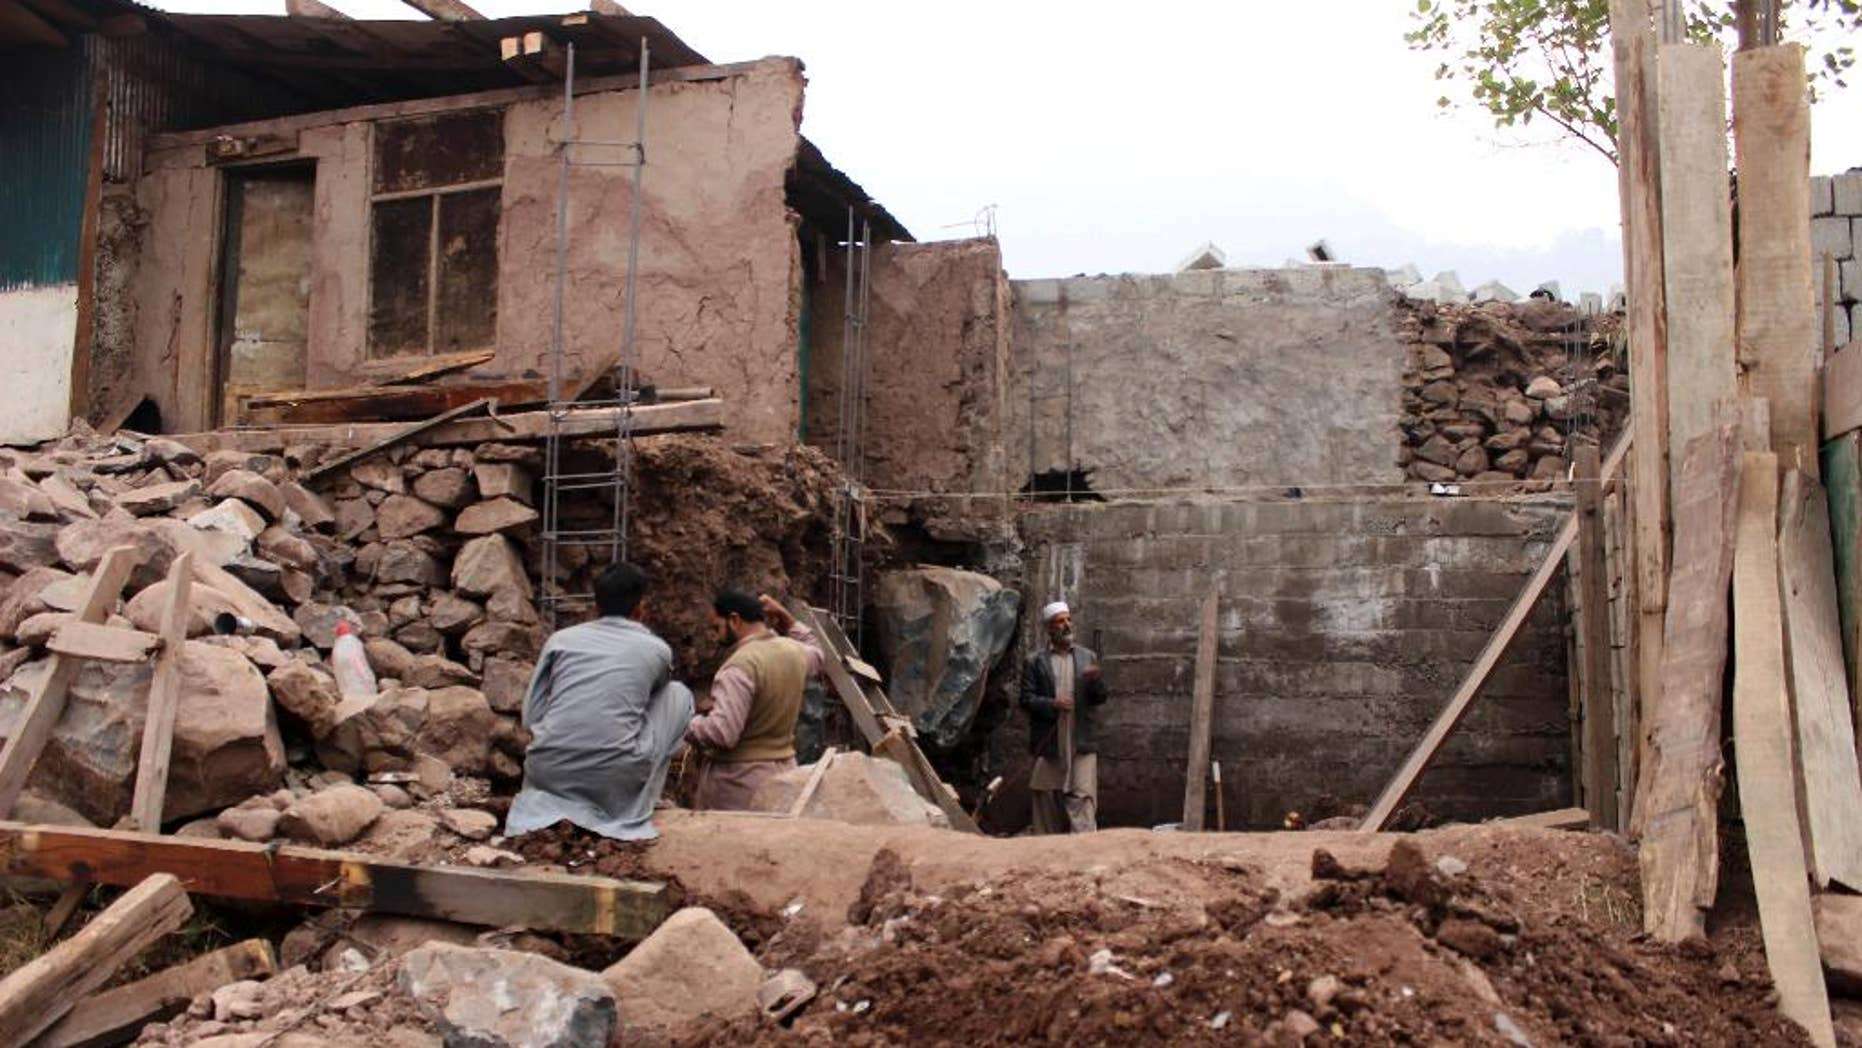 Pakistani villagers living at the Line of Control between Pakistan-Indian Kashmir, Chakoti, build concrete house in Pakistan, Monday, Nov. 21, 2016. Pakistan's military says Indian shelling has targeted several villages in Kashmir, killing scores of civilians and wounding others. (AP Photo/Roshan Mughal)